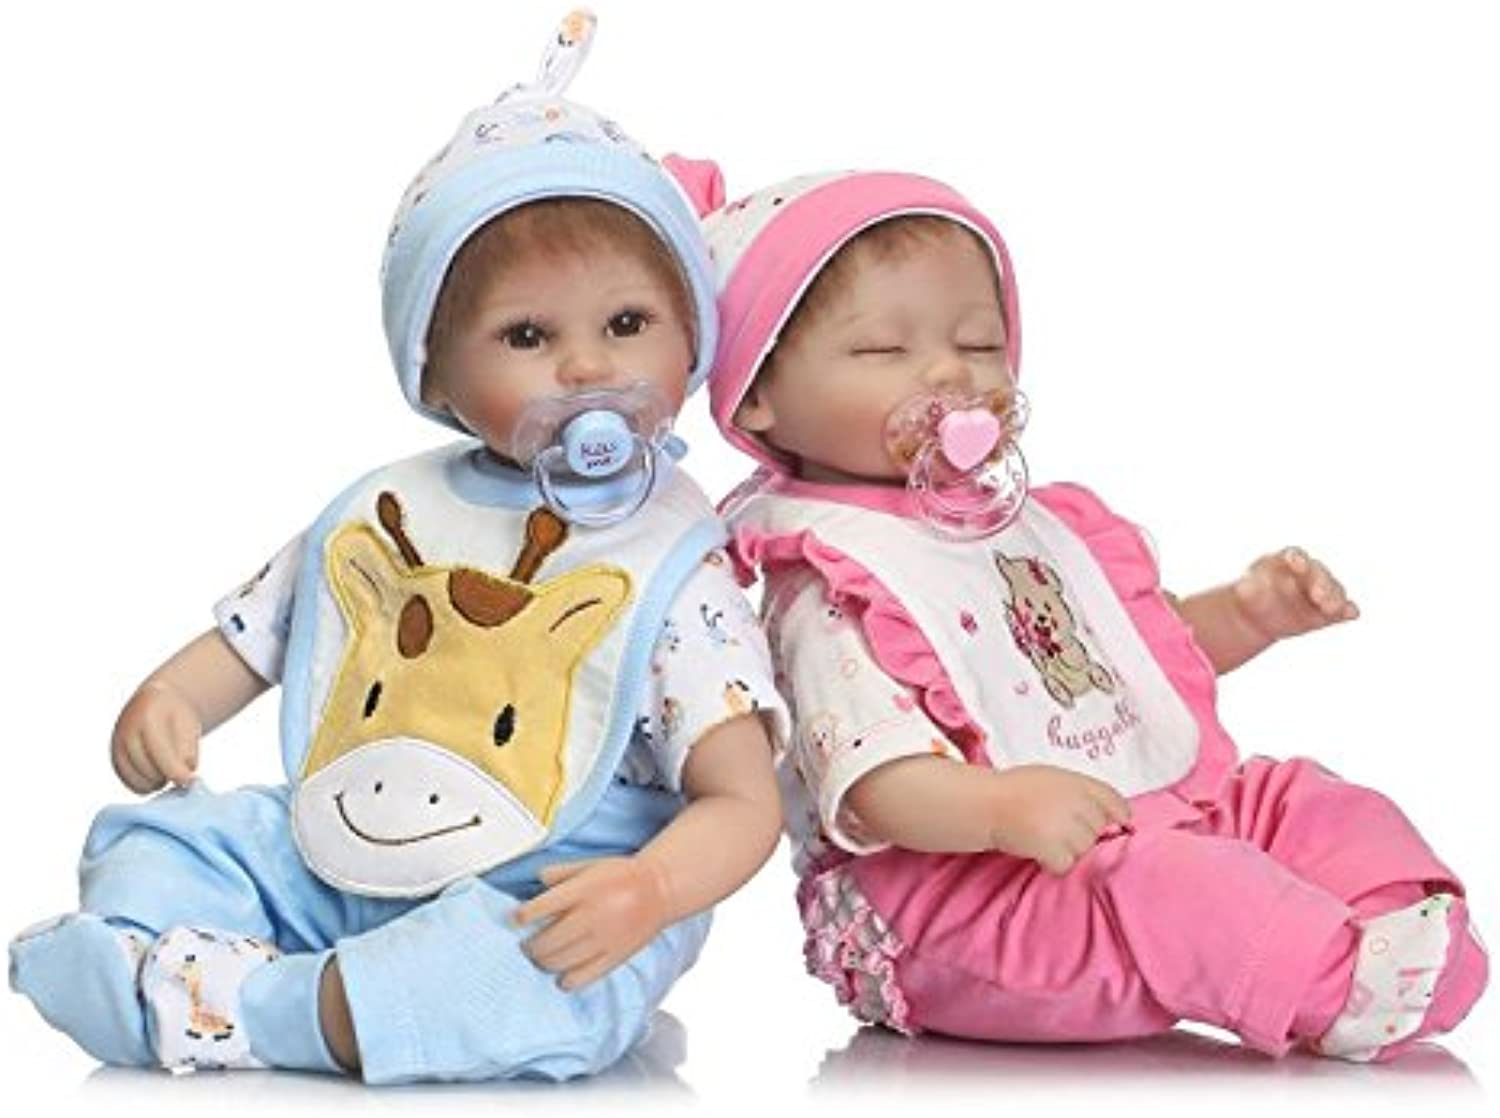 ZIYIUI One Pair 17  Silicone Baby Twins Dolls Real Life Baby Dolls Soft Vinyl Reborn Lifelike Newborn Baby Toy Gift